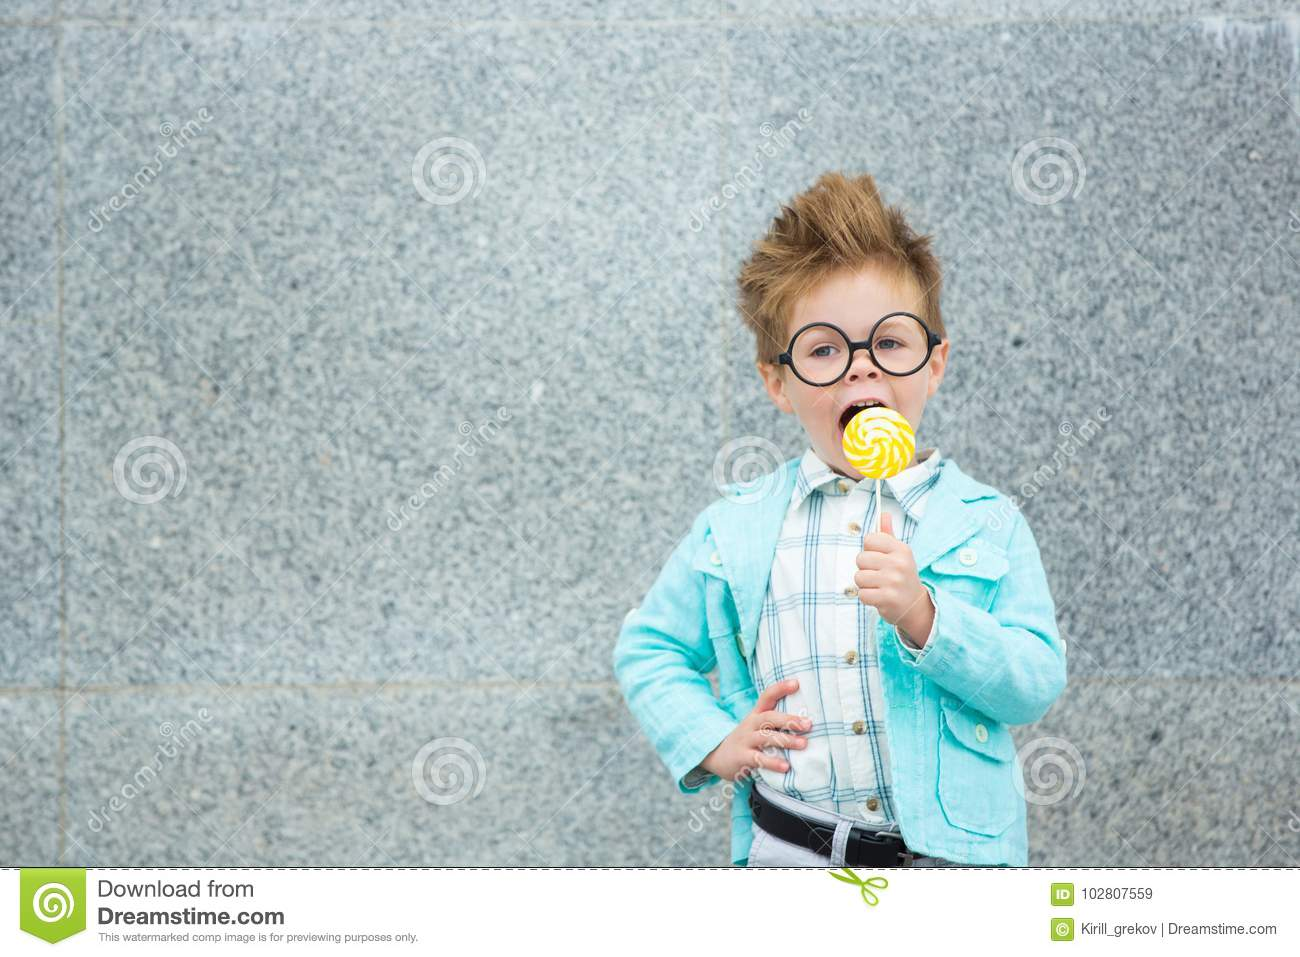 Fashion kid with lollipop near gray wall